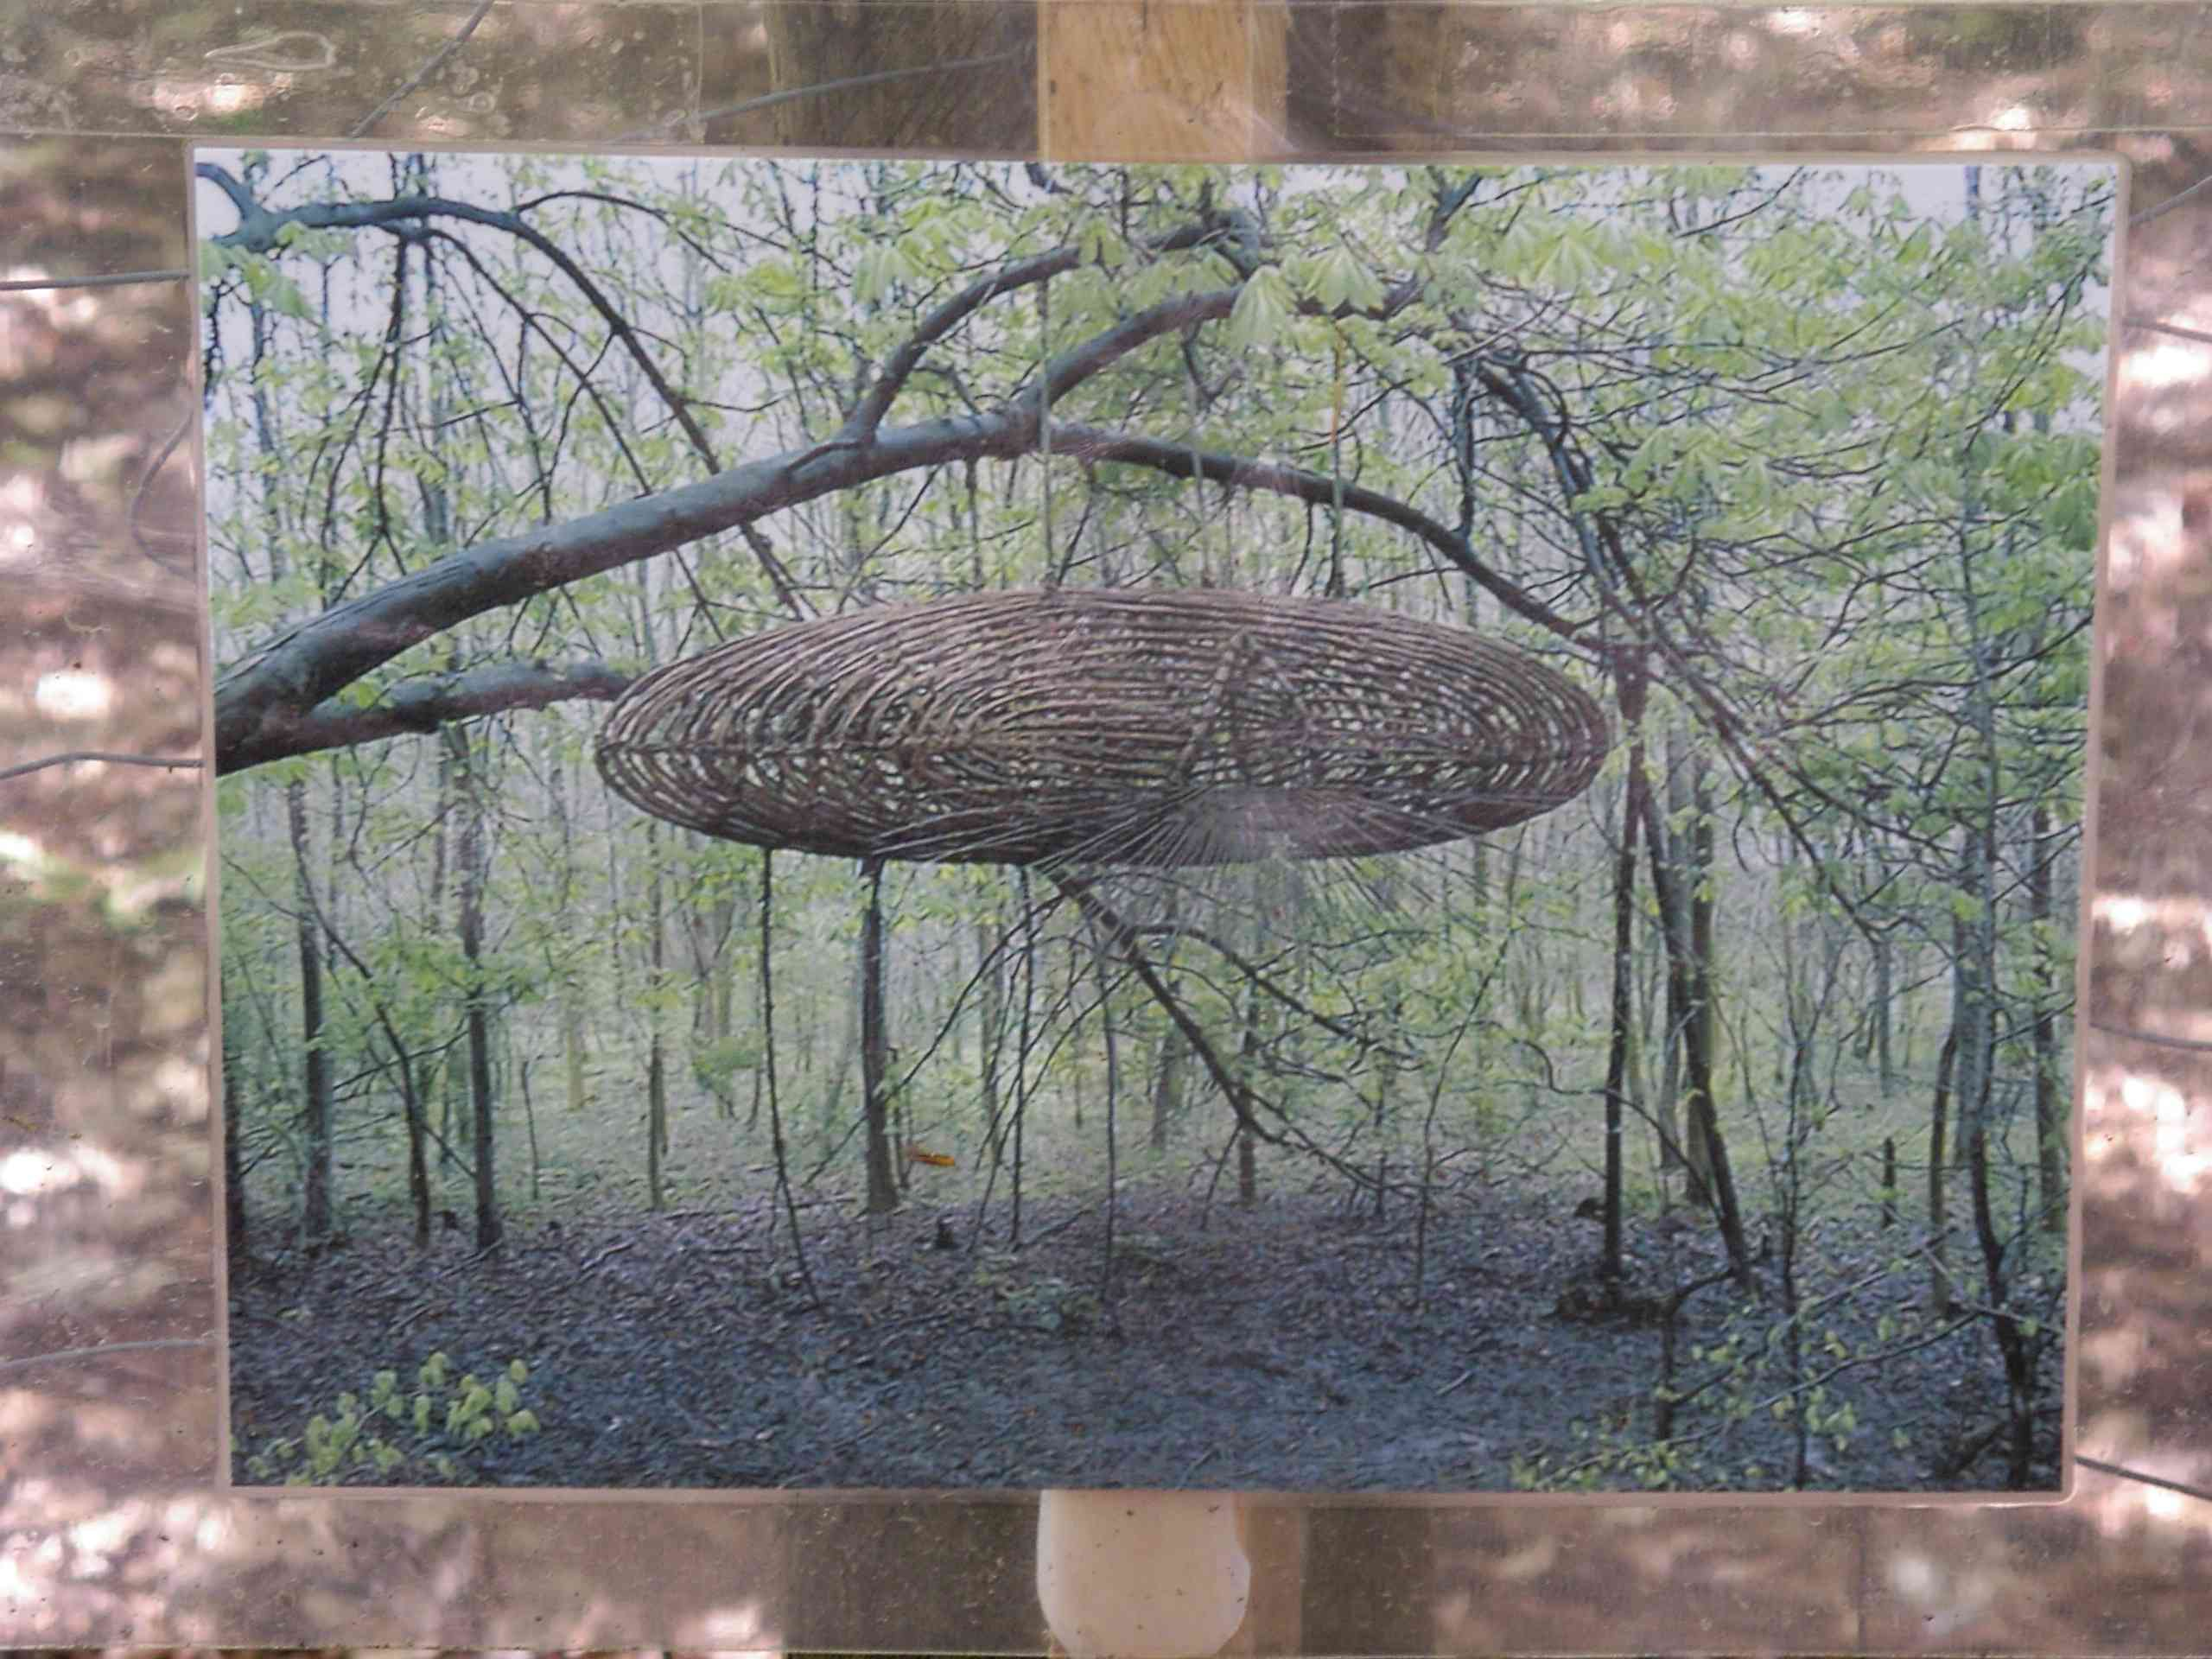 Photograph of artwork showing a pod of woven branches hanging in a forest